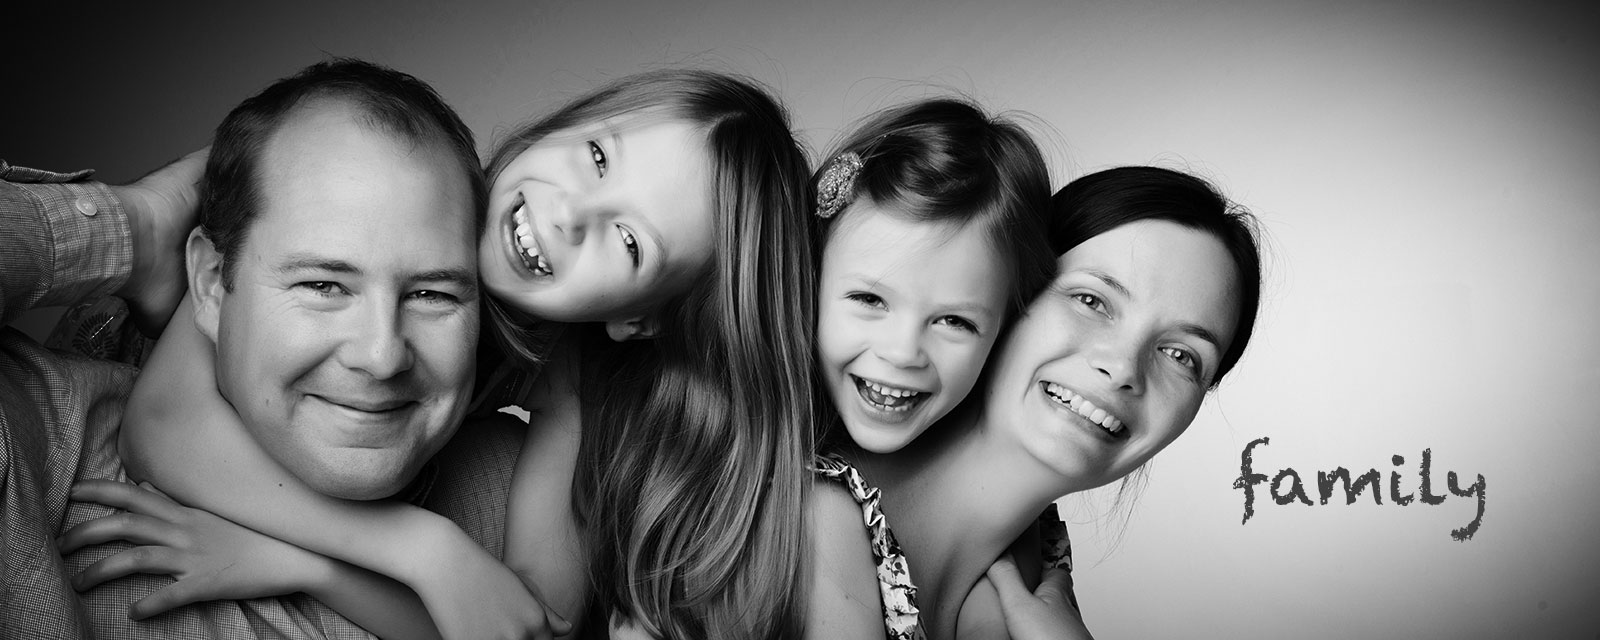 Bristol-Family-Portrait-Photography-at-Zzzone-Studio-2